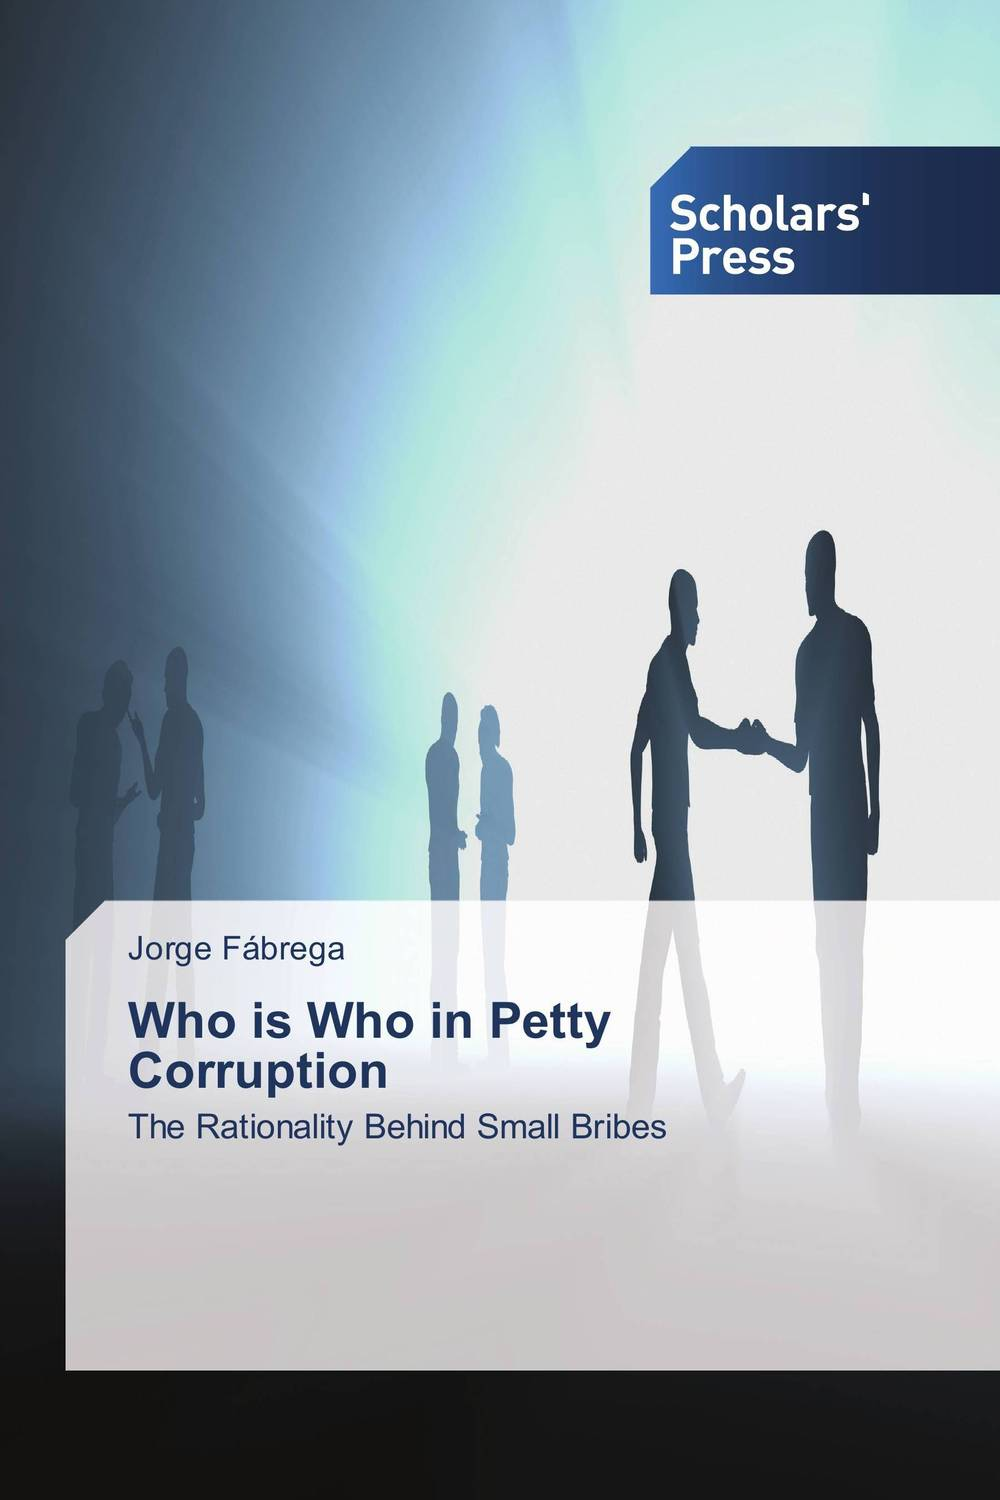 Who is Who in Petty Corruption collusion